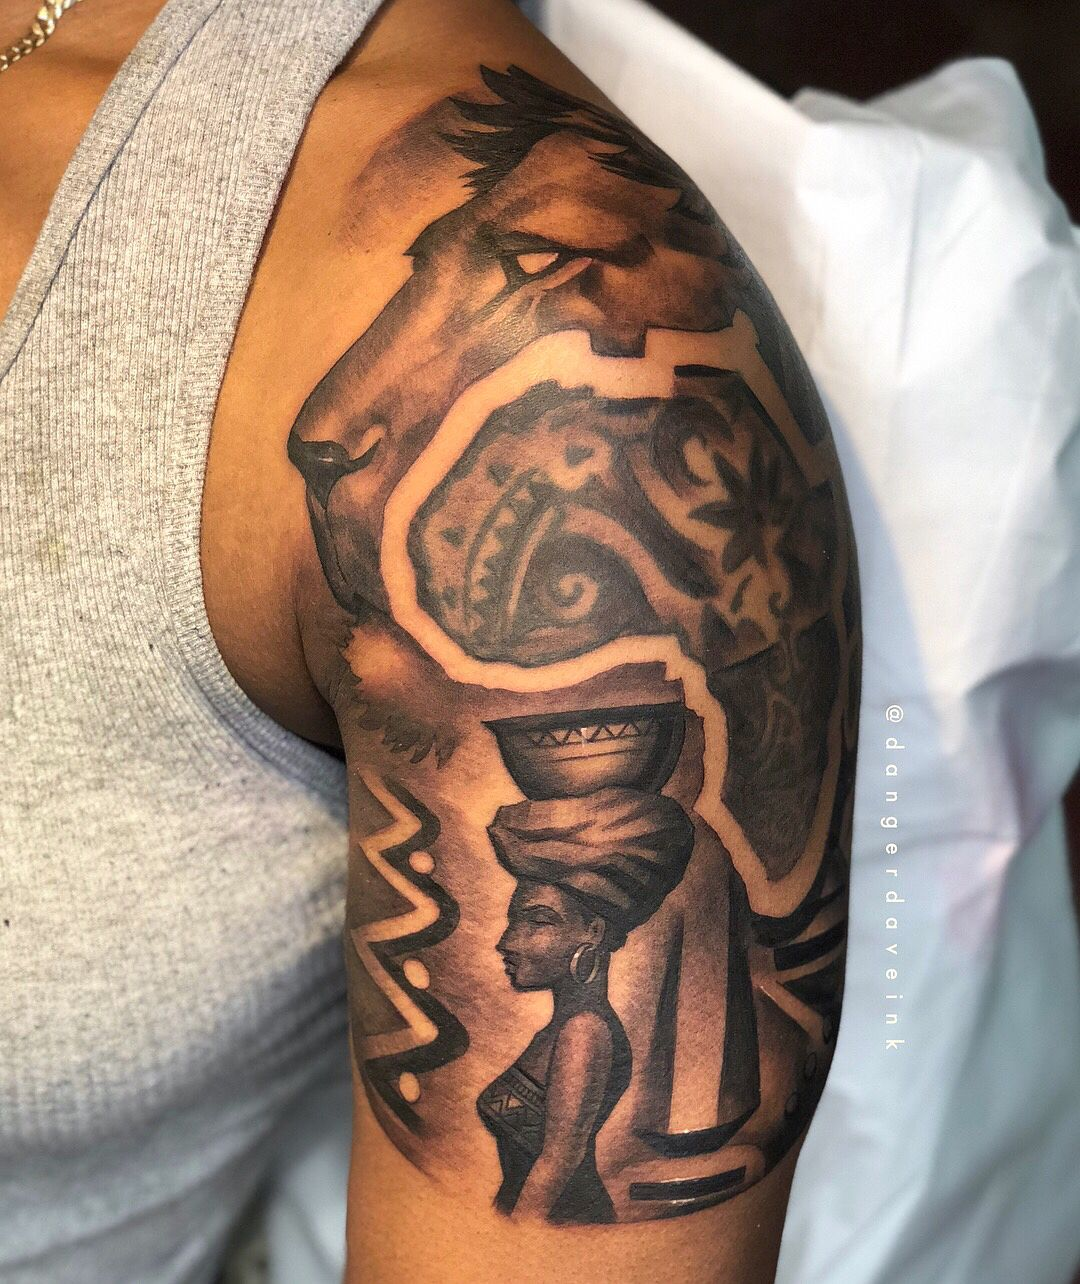 Image May Contain One Or More People African Tattoo African Sleeve Tattoo Egyptian Tattoo Sleeve